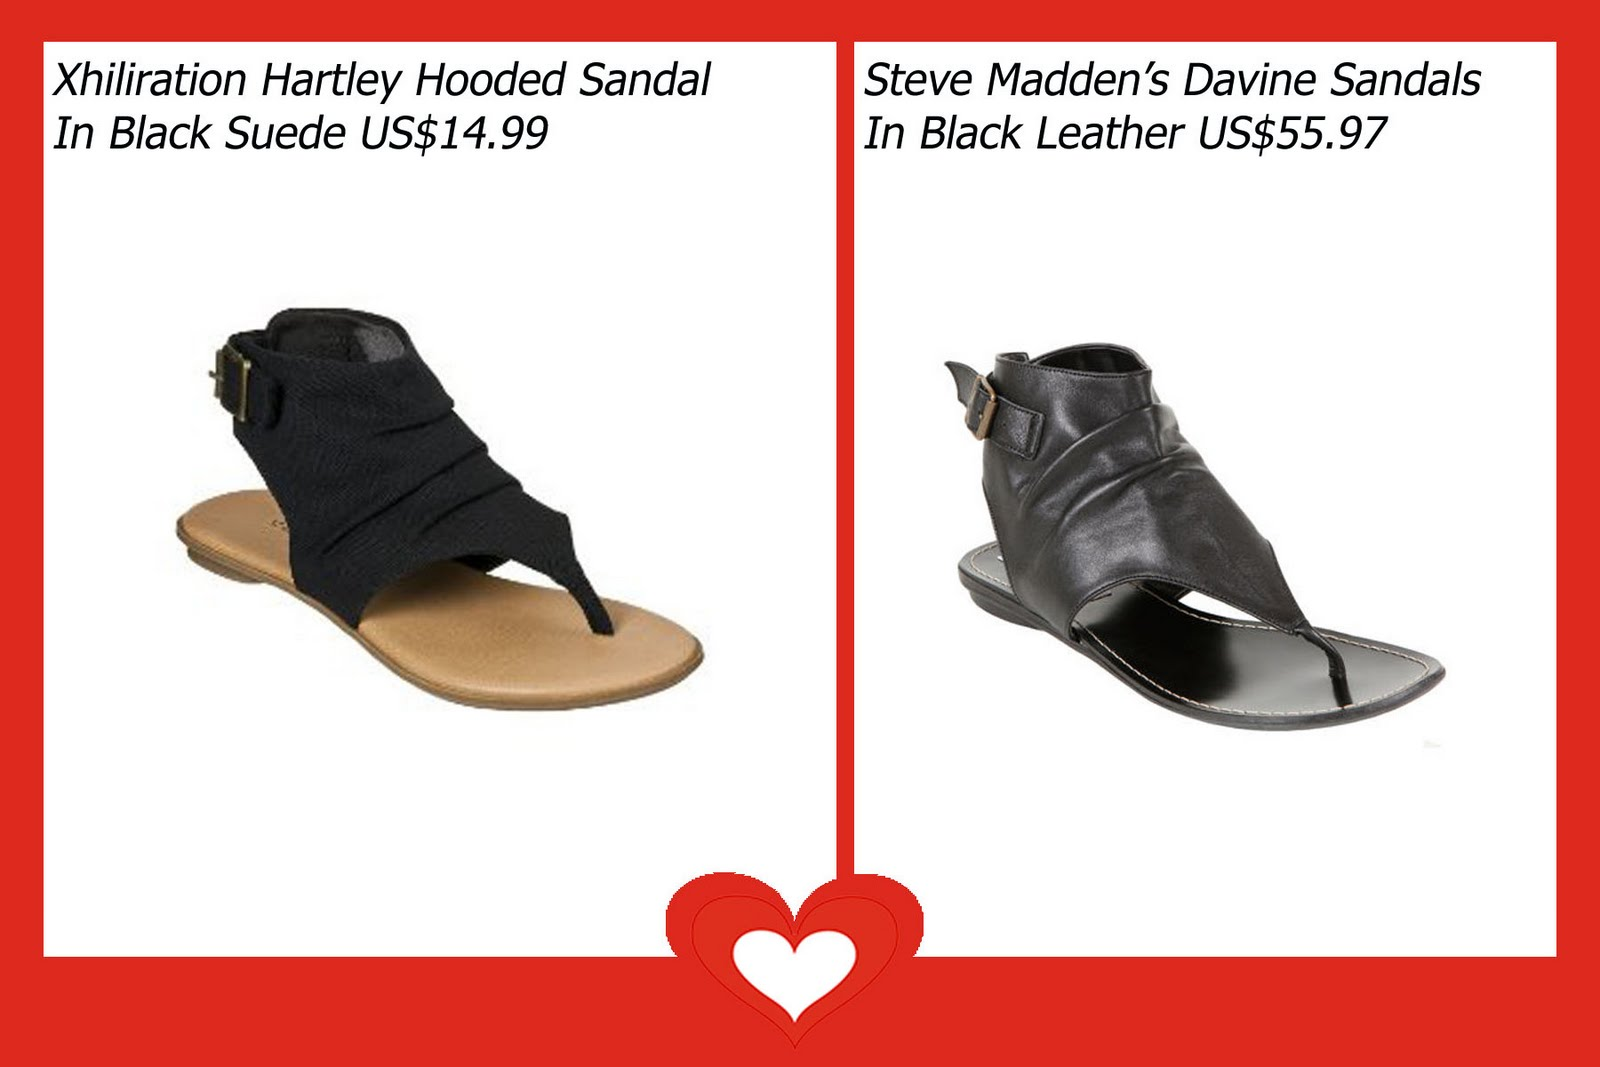 ... buckled sandal from Steve Madden looks amazing with the coolest  dresses, skirts and jumpers. I got her an amazing look-alike hooded sandals  from Target ...